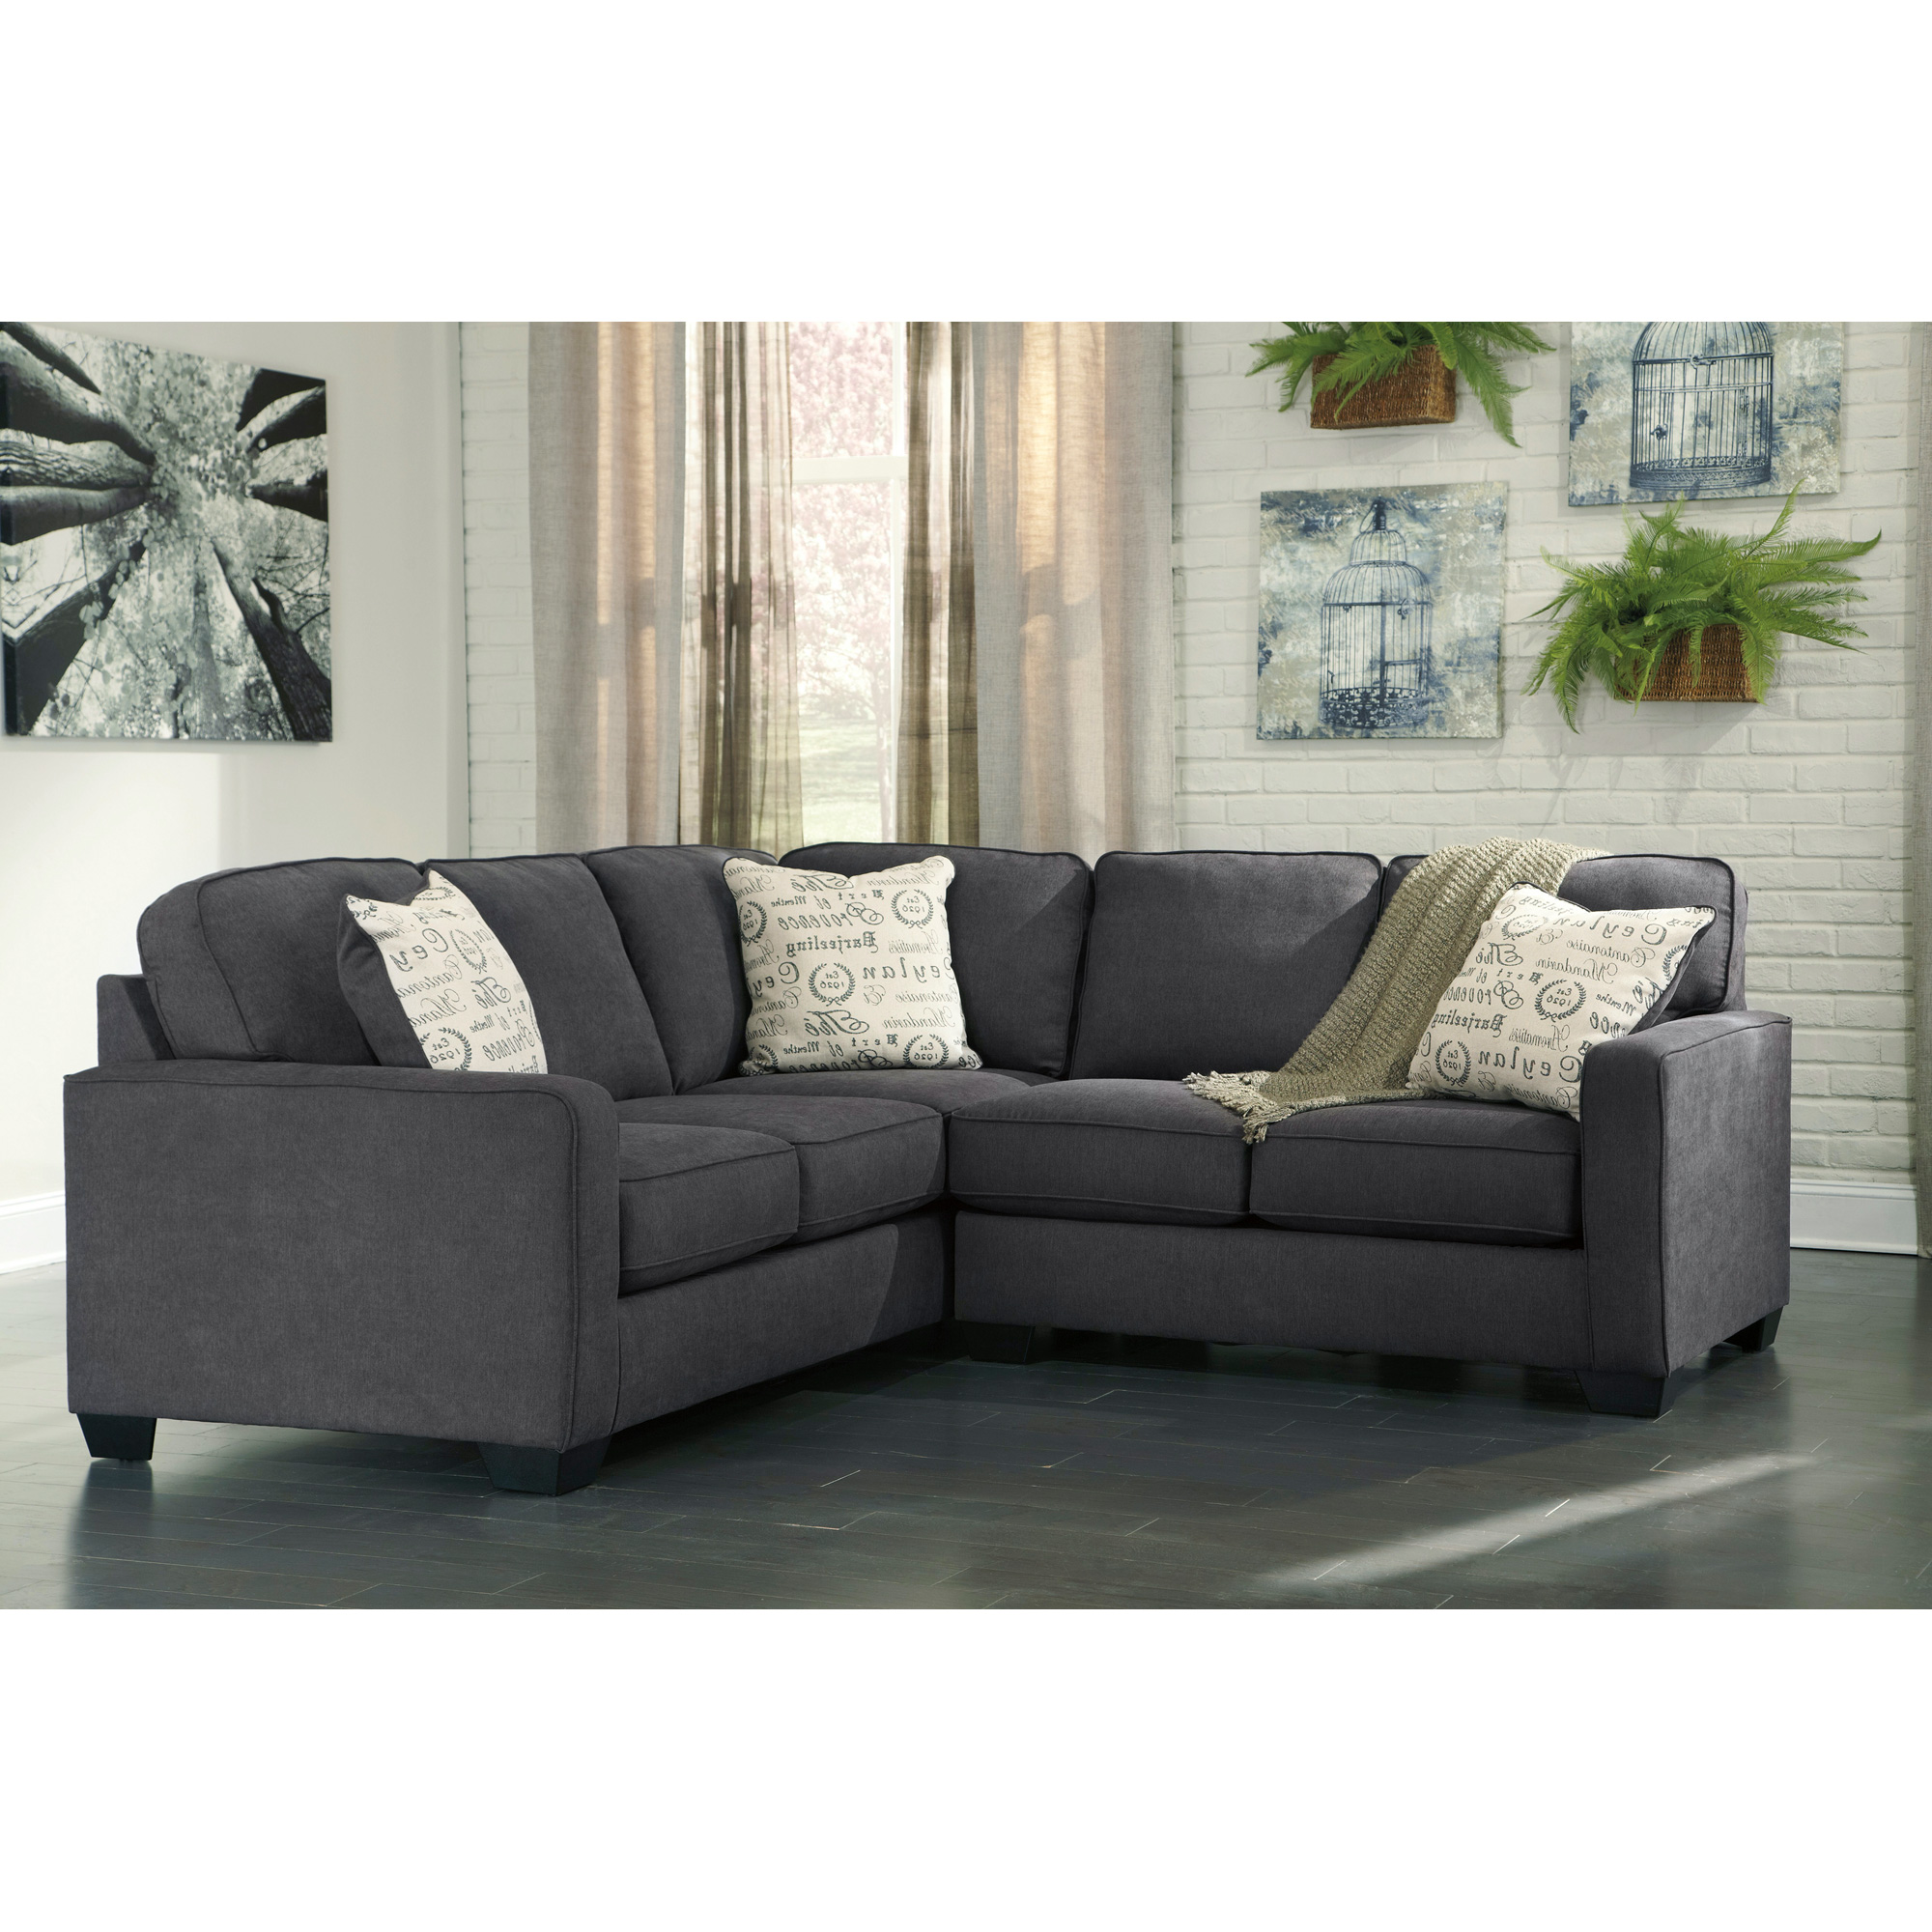 Ashley Furniture | Alenya Charcoal 2 Piece Right Sectional Sofa